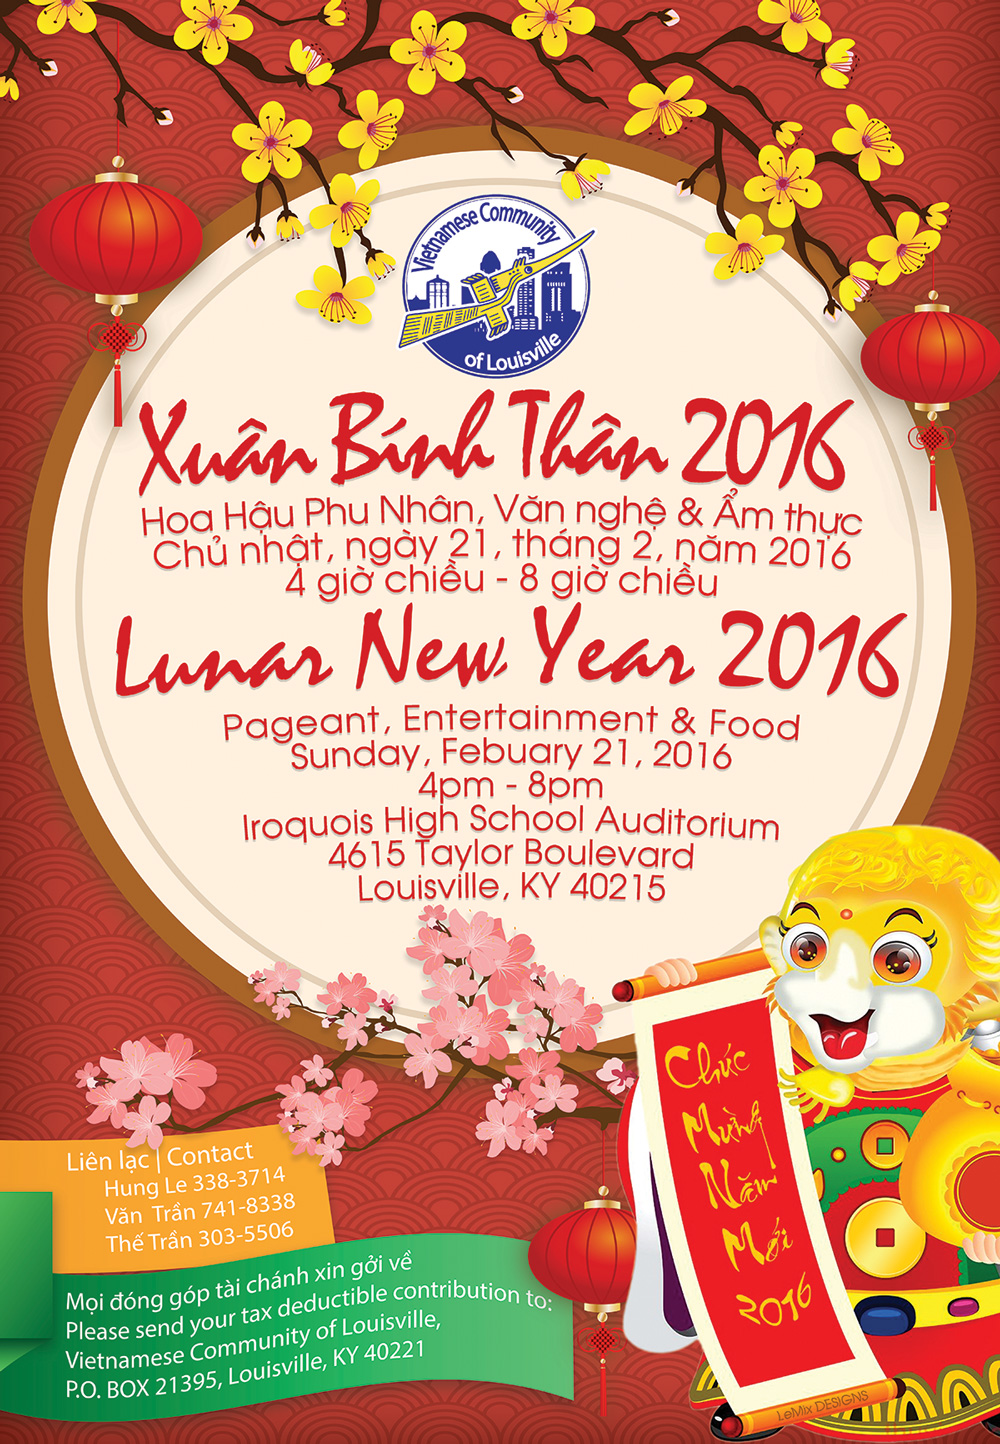 Lunar New Year 2016